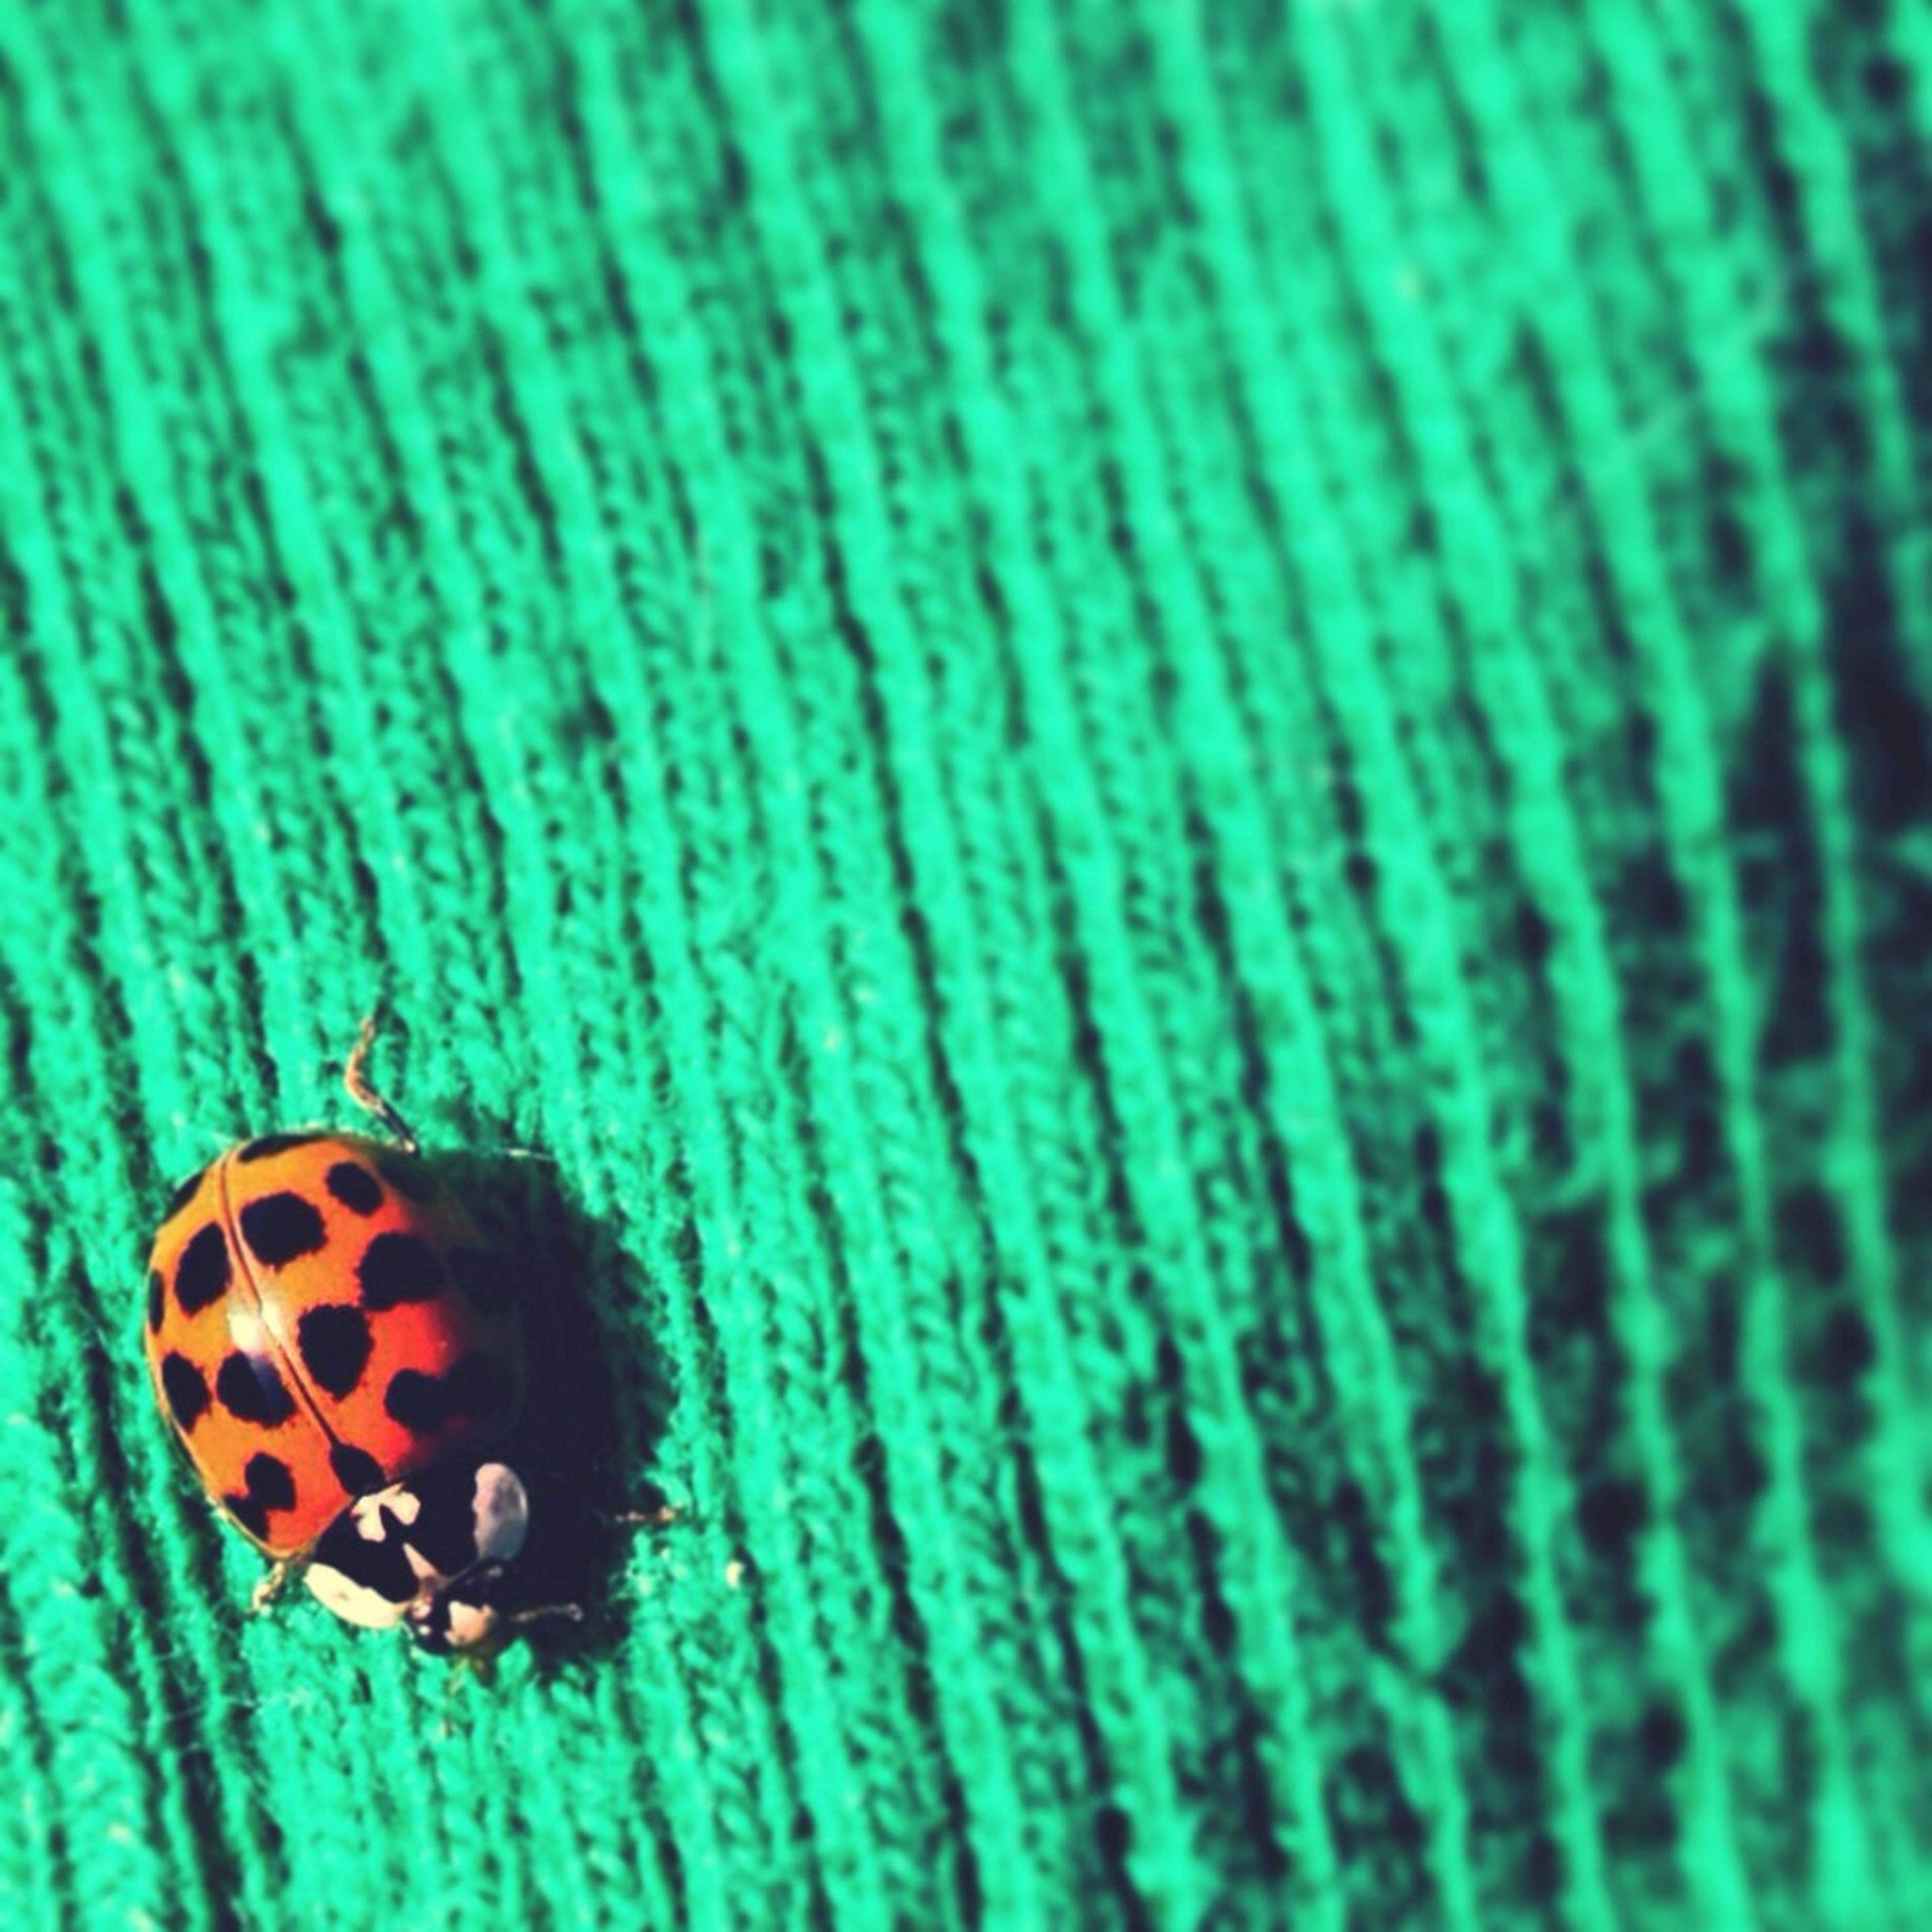 close-up, pattern, insect, textured, animal themes, natural pattern, full frame, indoors, one animal, backgrounds, selective focus, design, still life, single object, no people, fabric, spotted, high angle view, brown, blue